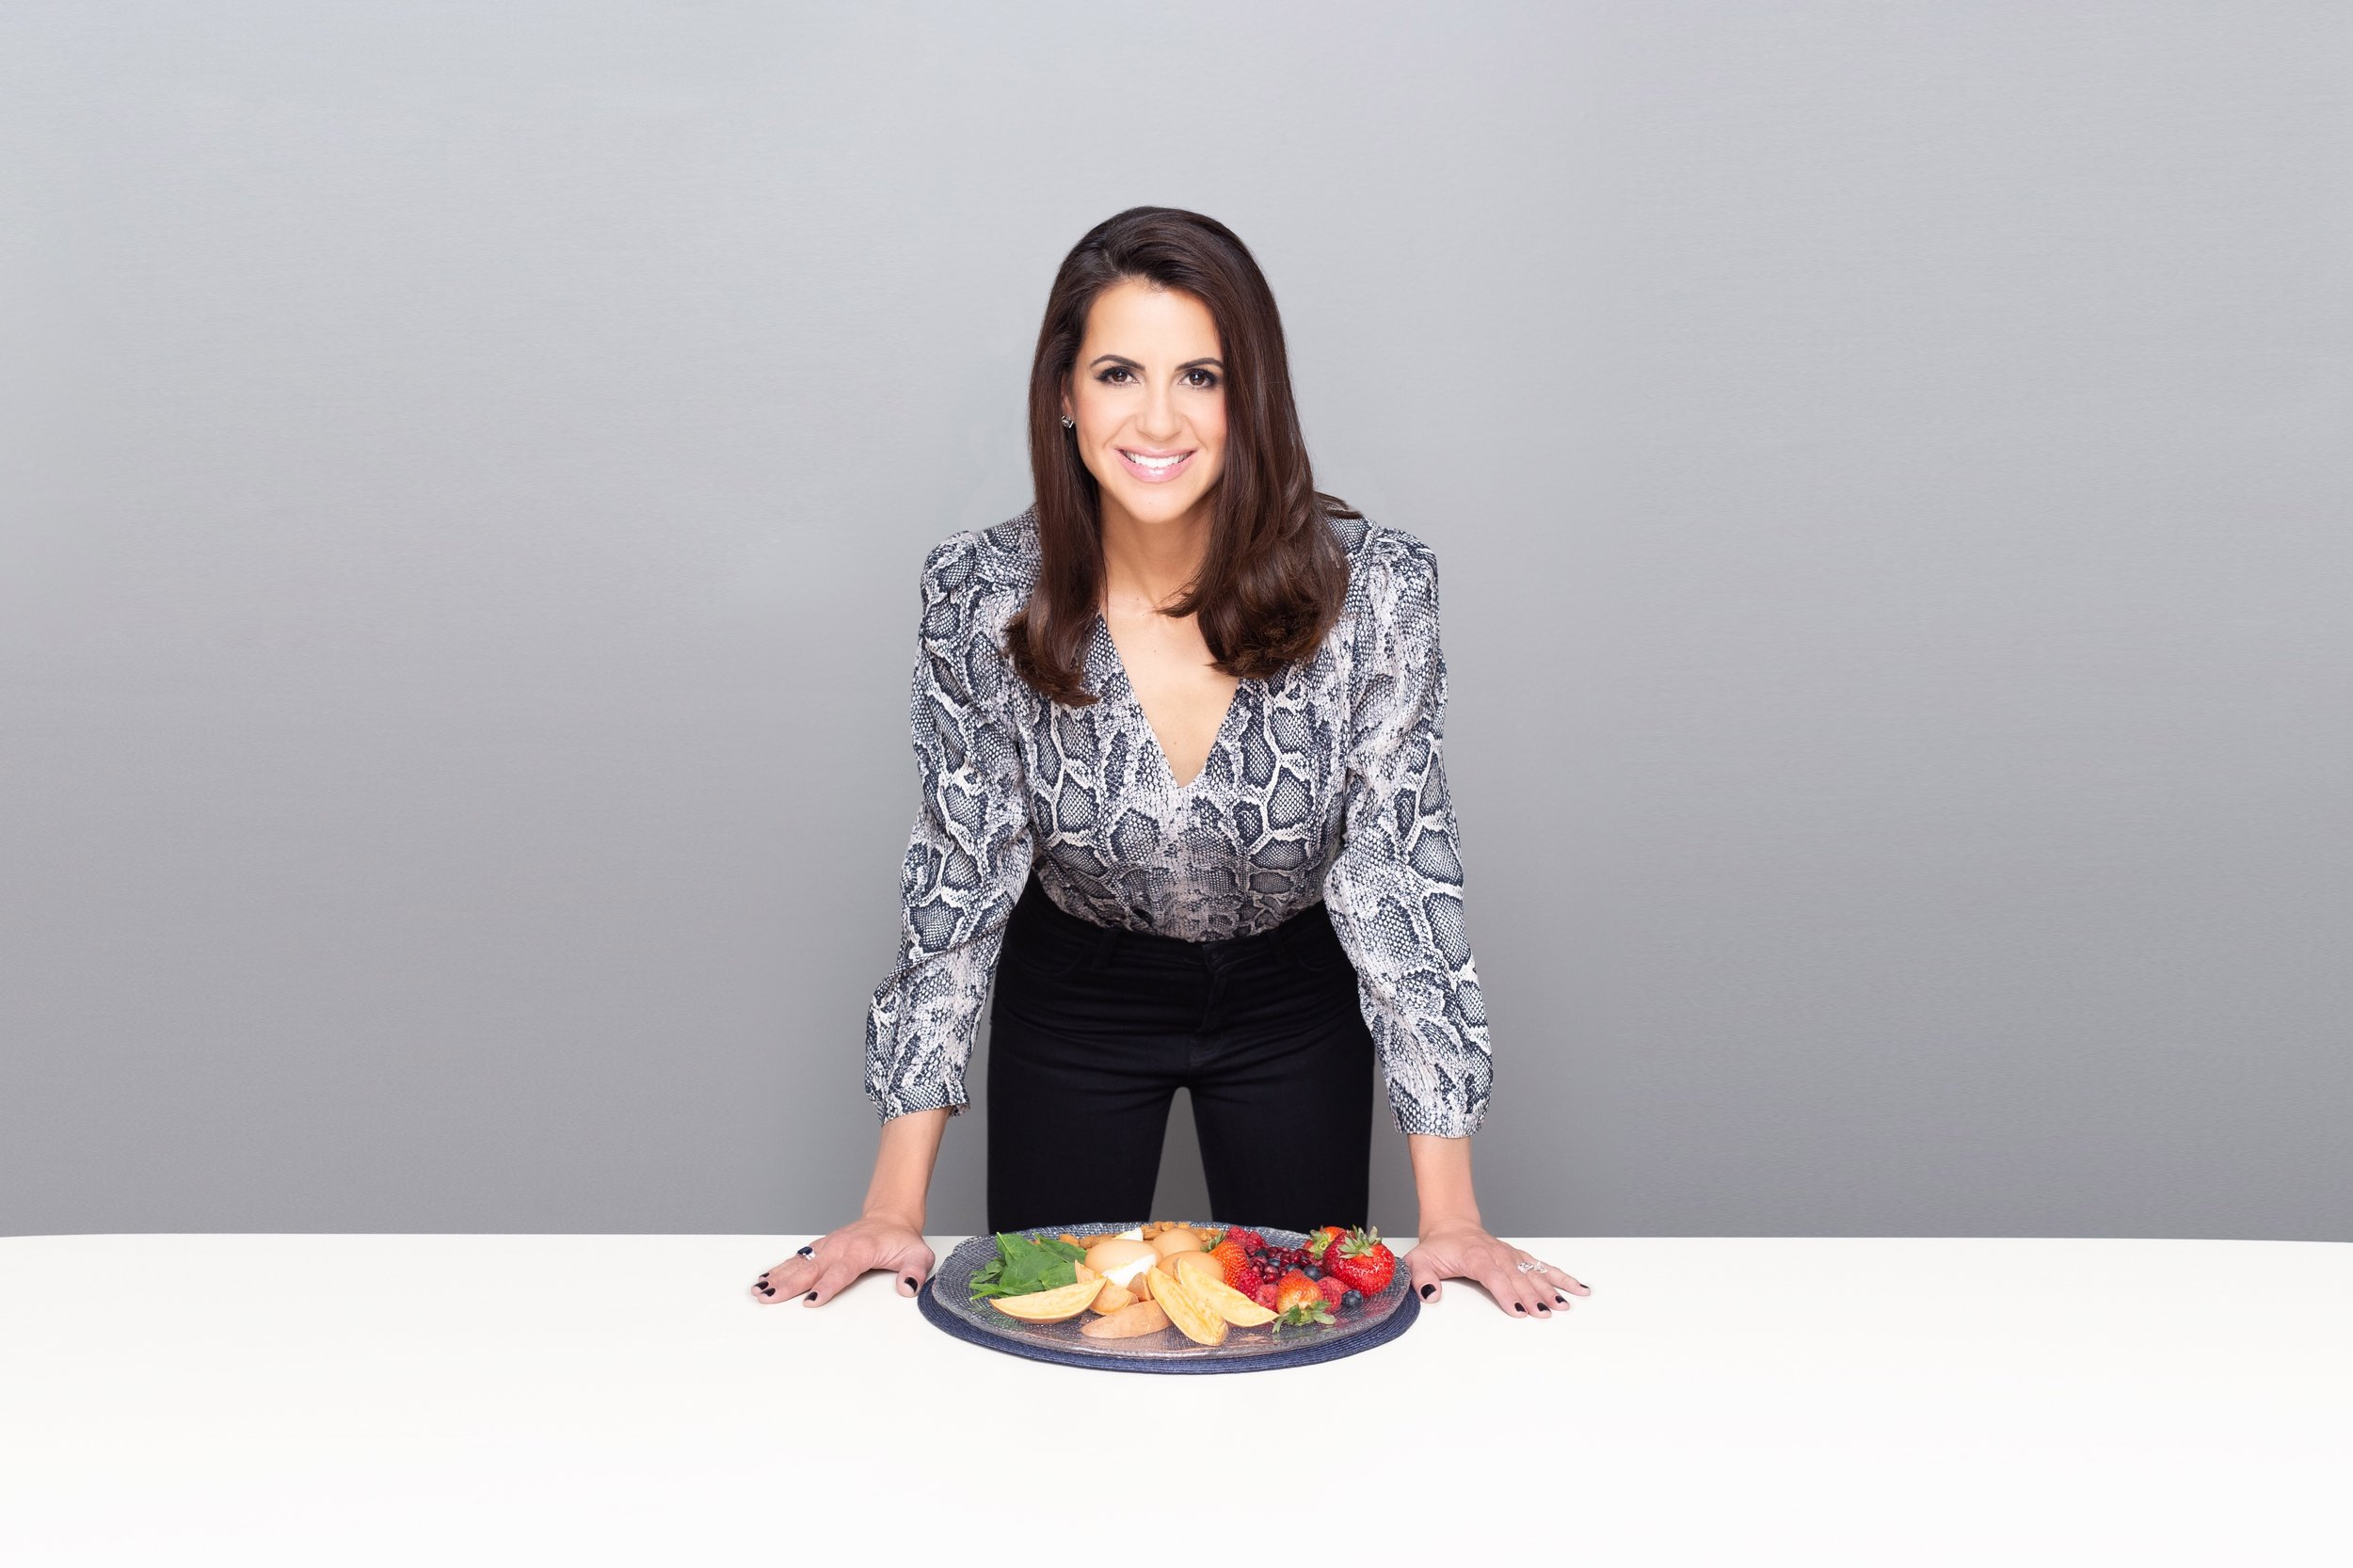 CERTIFIED & QUALIFIED - Karina's professional qualifications include certifications and degrees from:The Institute for Integrative NutritionColumbia University Teachers CollegeThe University of Nevada for Psychology with an emphasis on Pre-Med